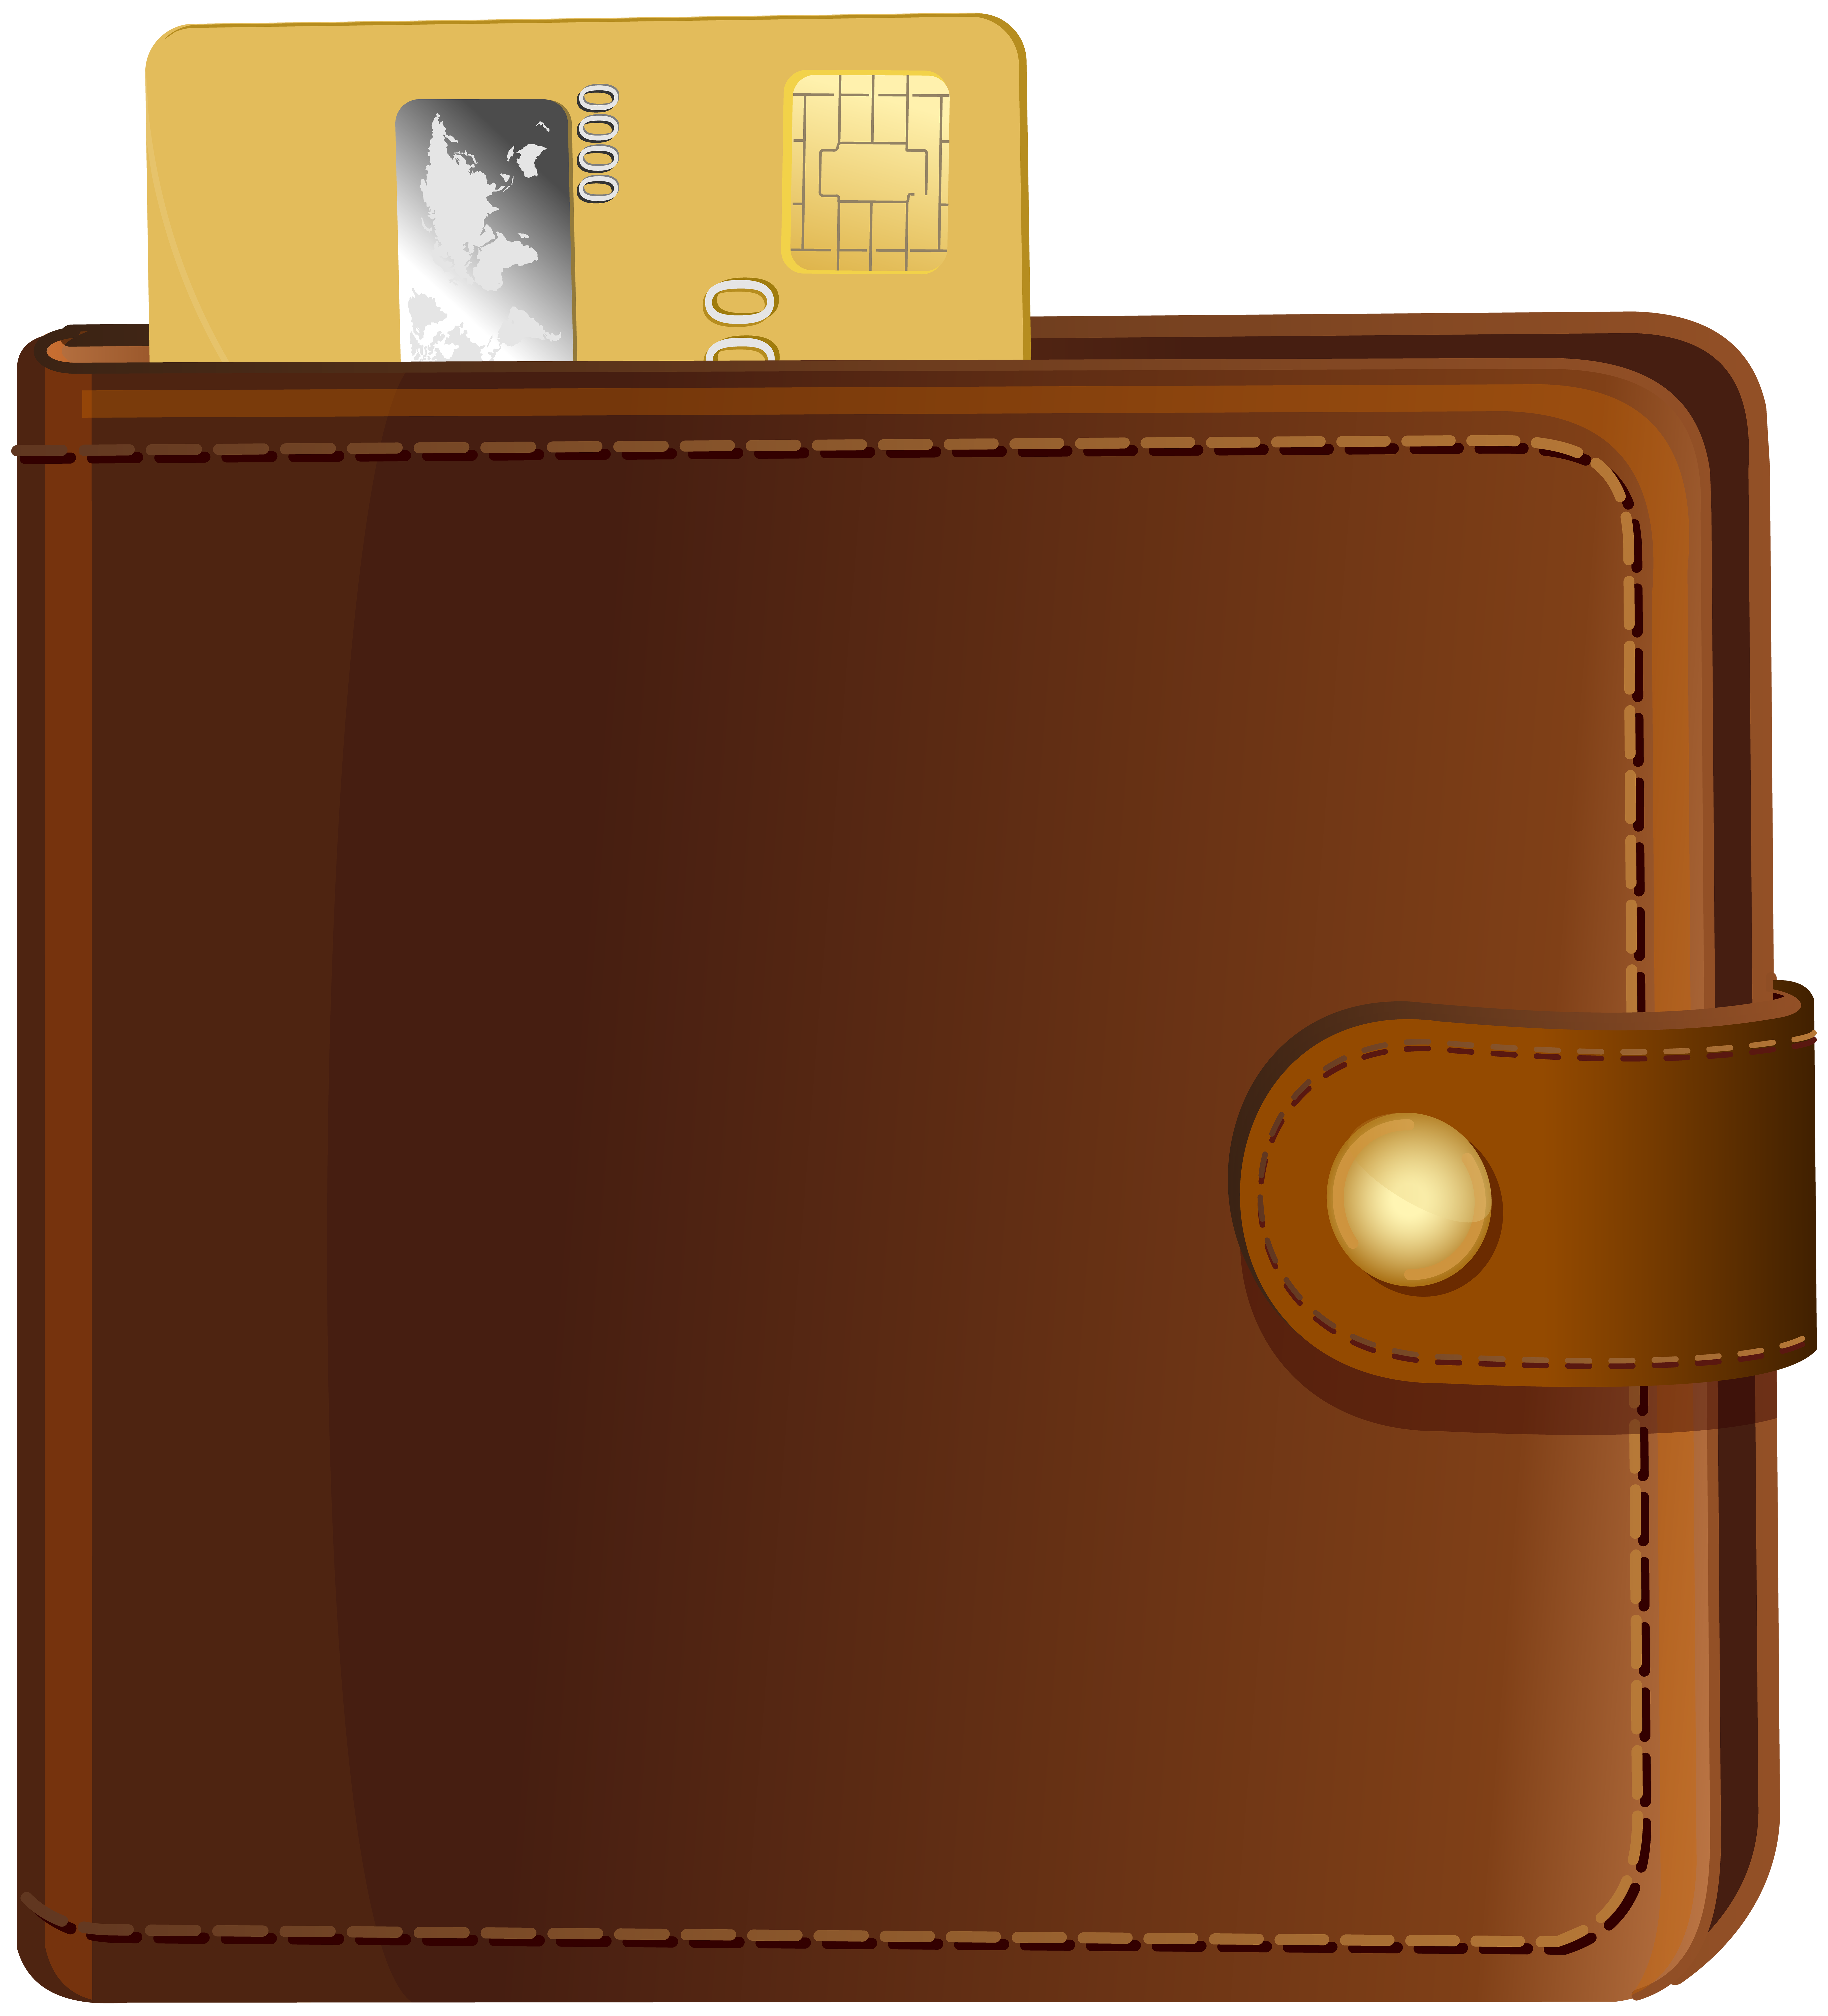 Wallet with Credit Card Transparent PNG Clip Art.